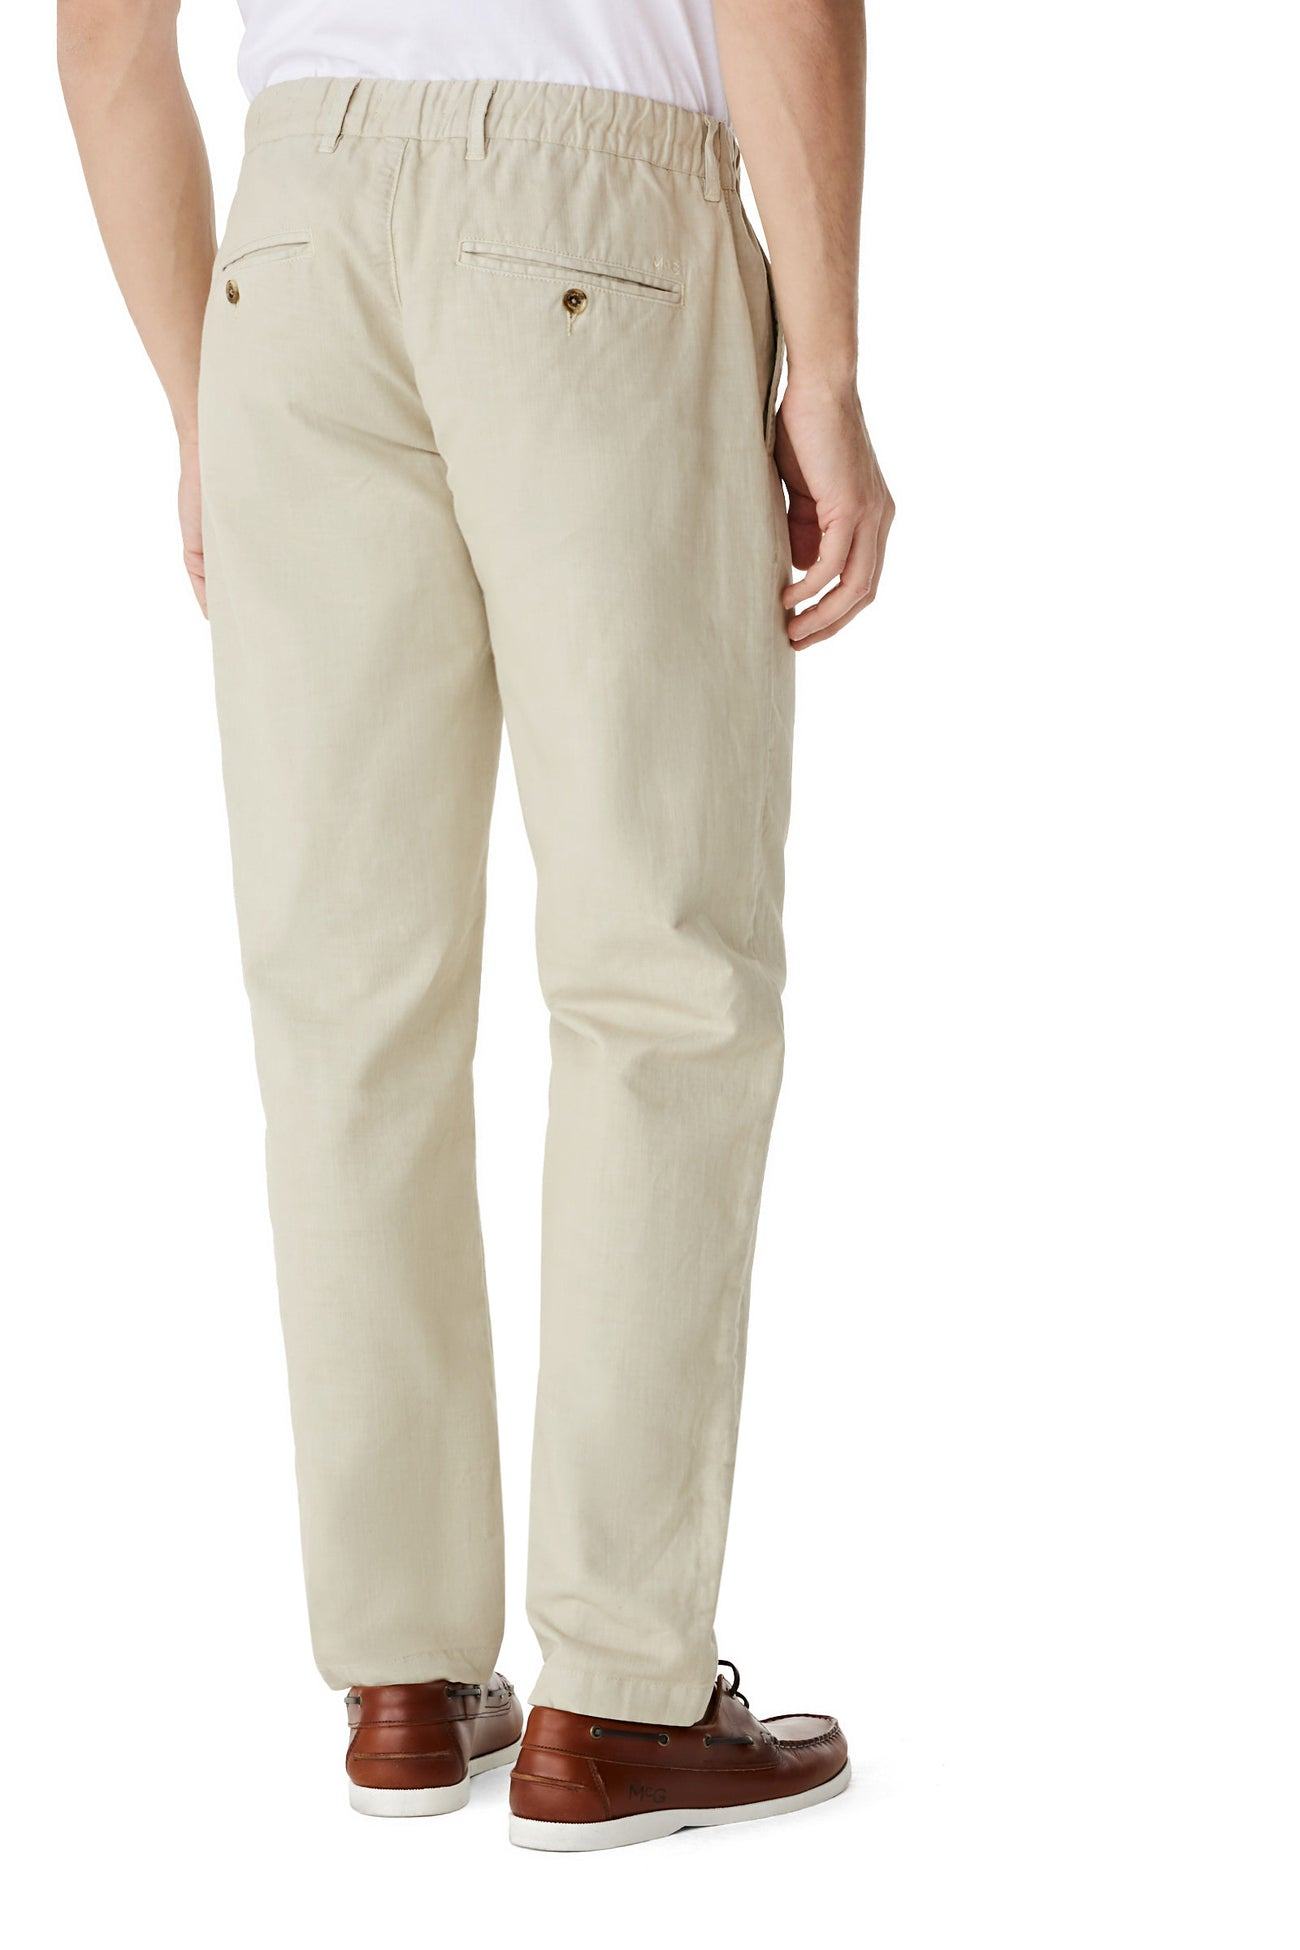 McG Relaxed fit trousers in cotton and linen blend